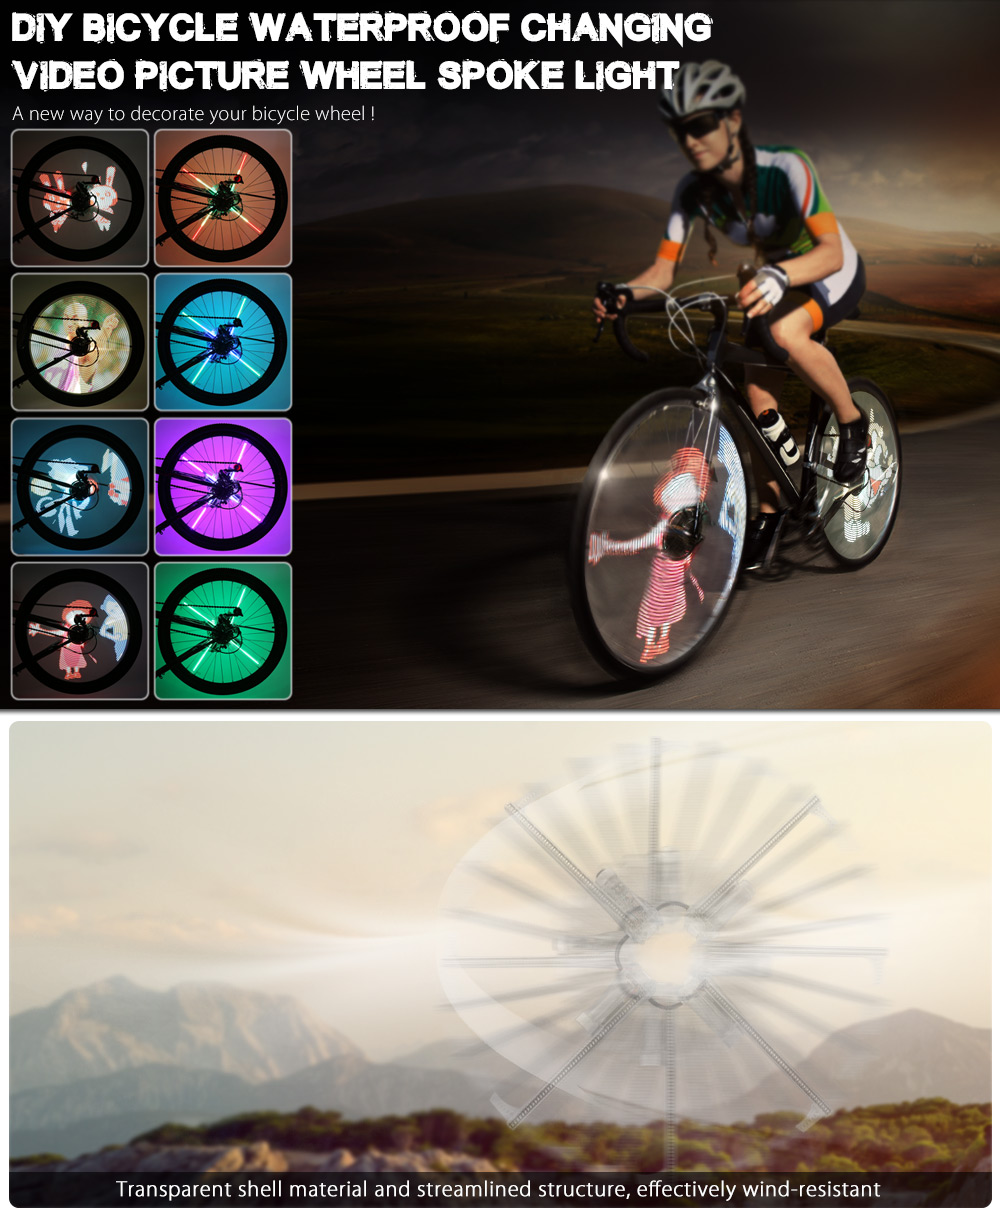 FT - 801 Pro DIY Cycling Bicycle 416 LEDs Waterproof Colorful Changing Video Gift Pictures Bike Wheel Spoke Light